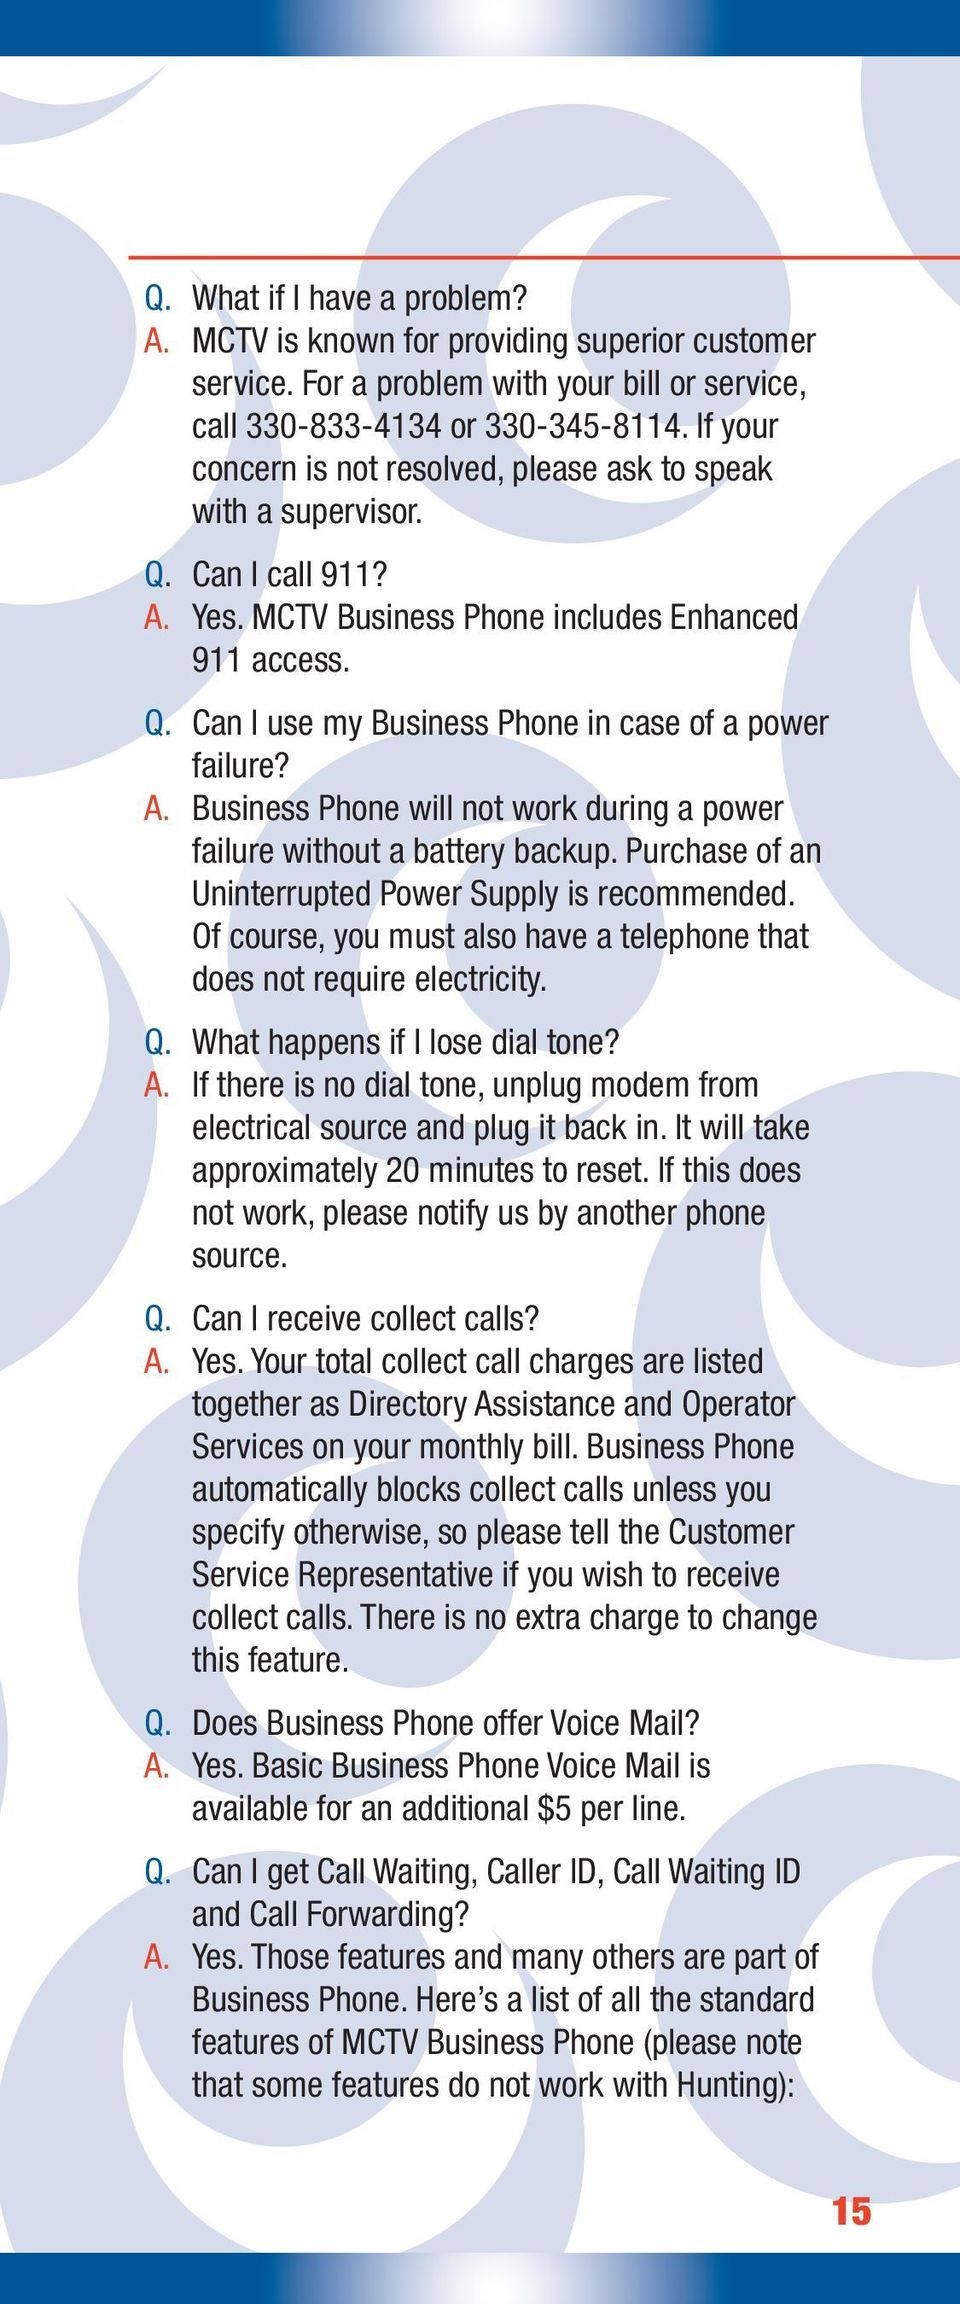 A. Business Phone will not work during a power failure without a battery backup. Purchase of an Uninterrupted Power Supply is recommended.